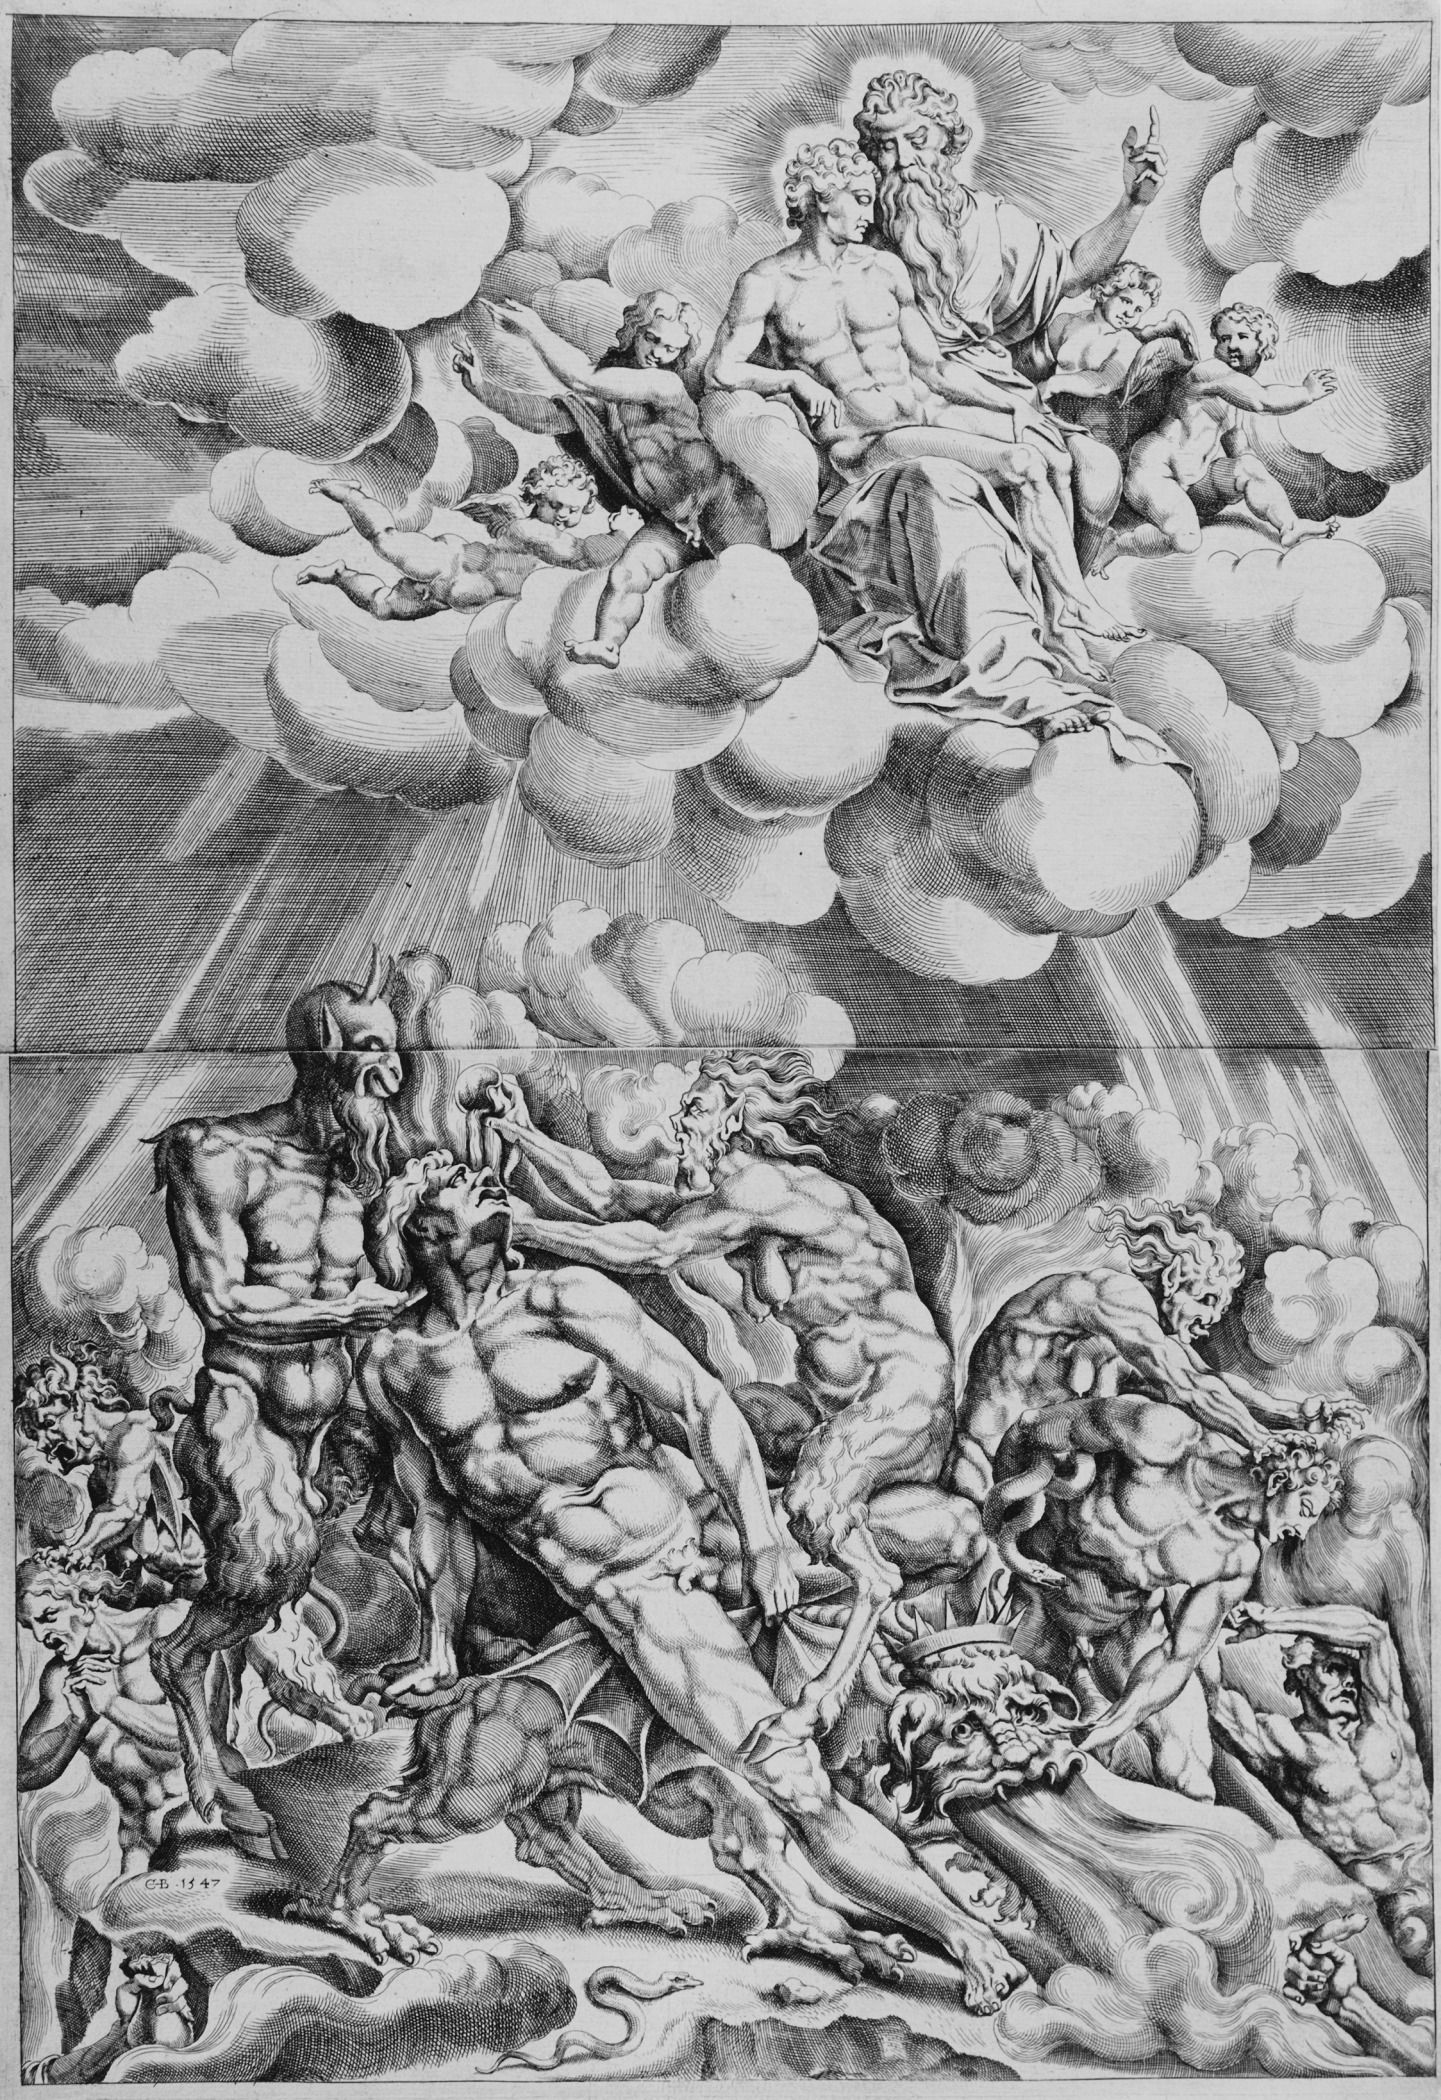 Pin by Richard Kincaid on Bible Art | Heaven, hell, Bible ...